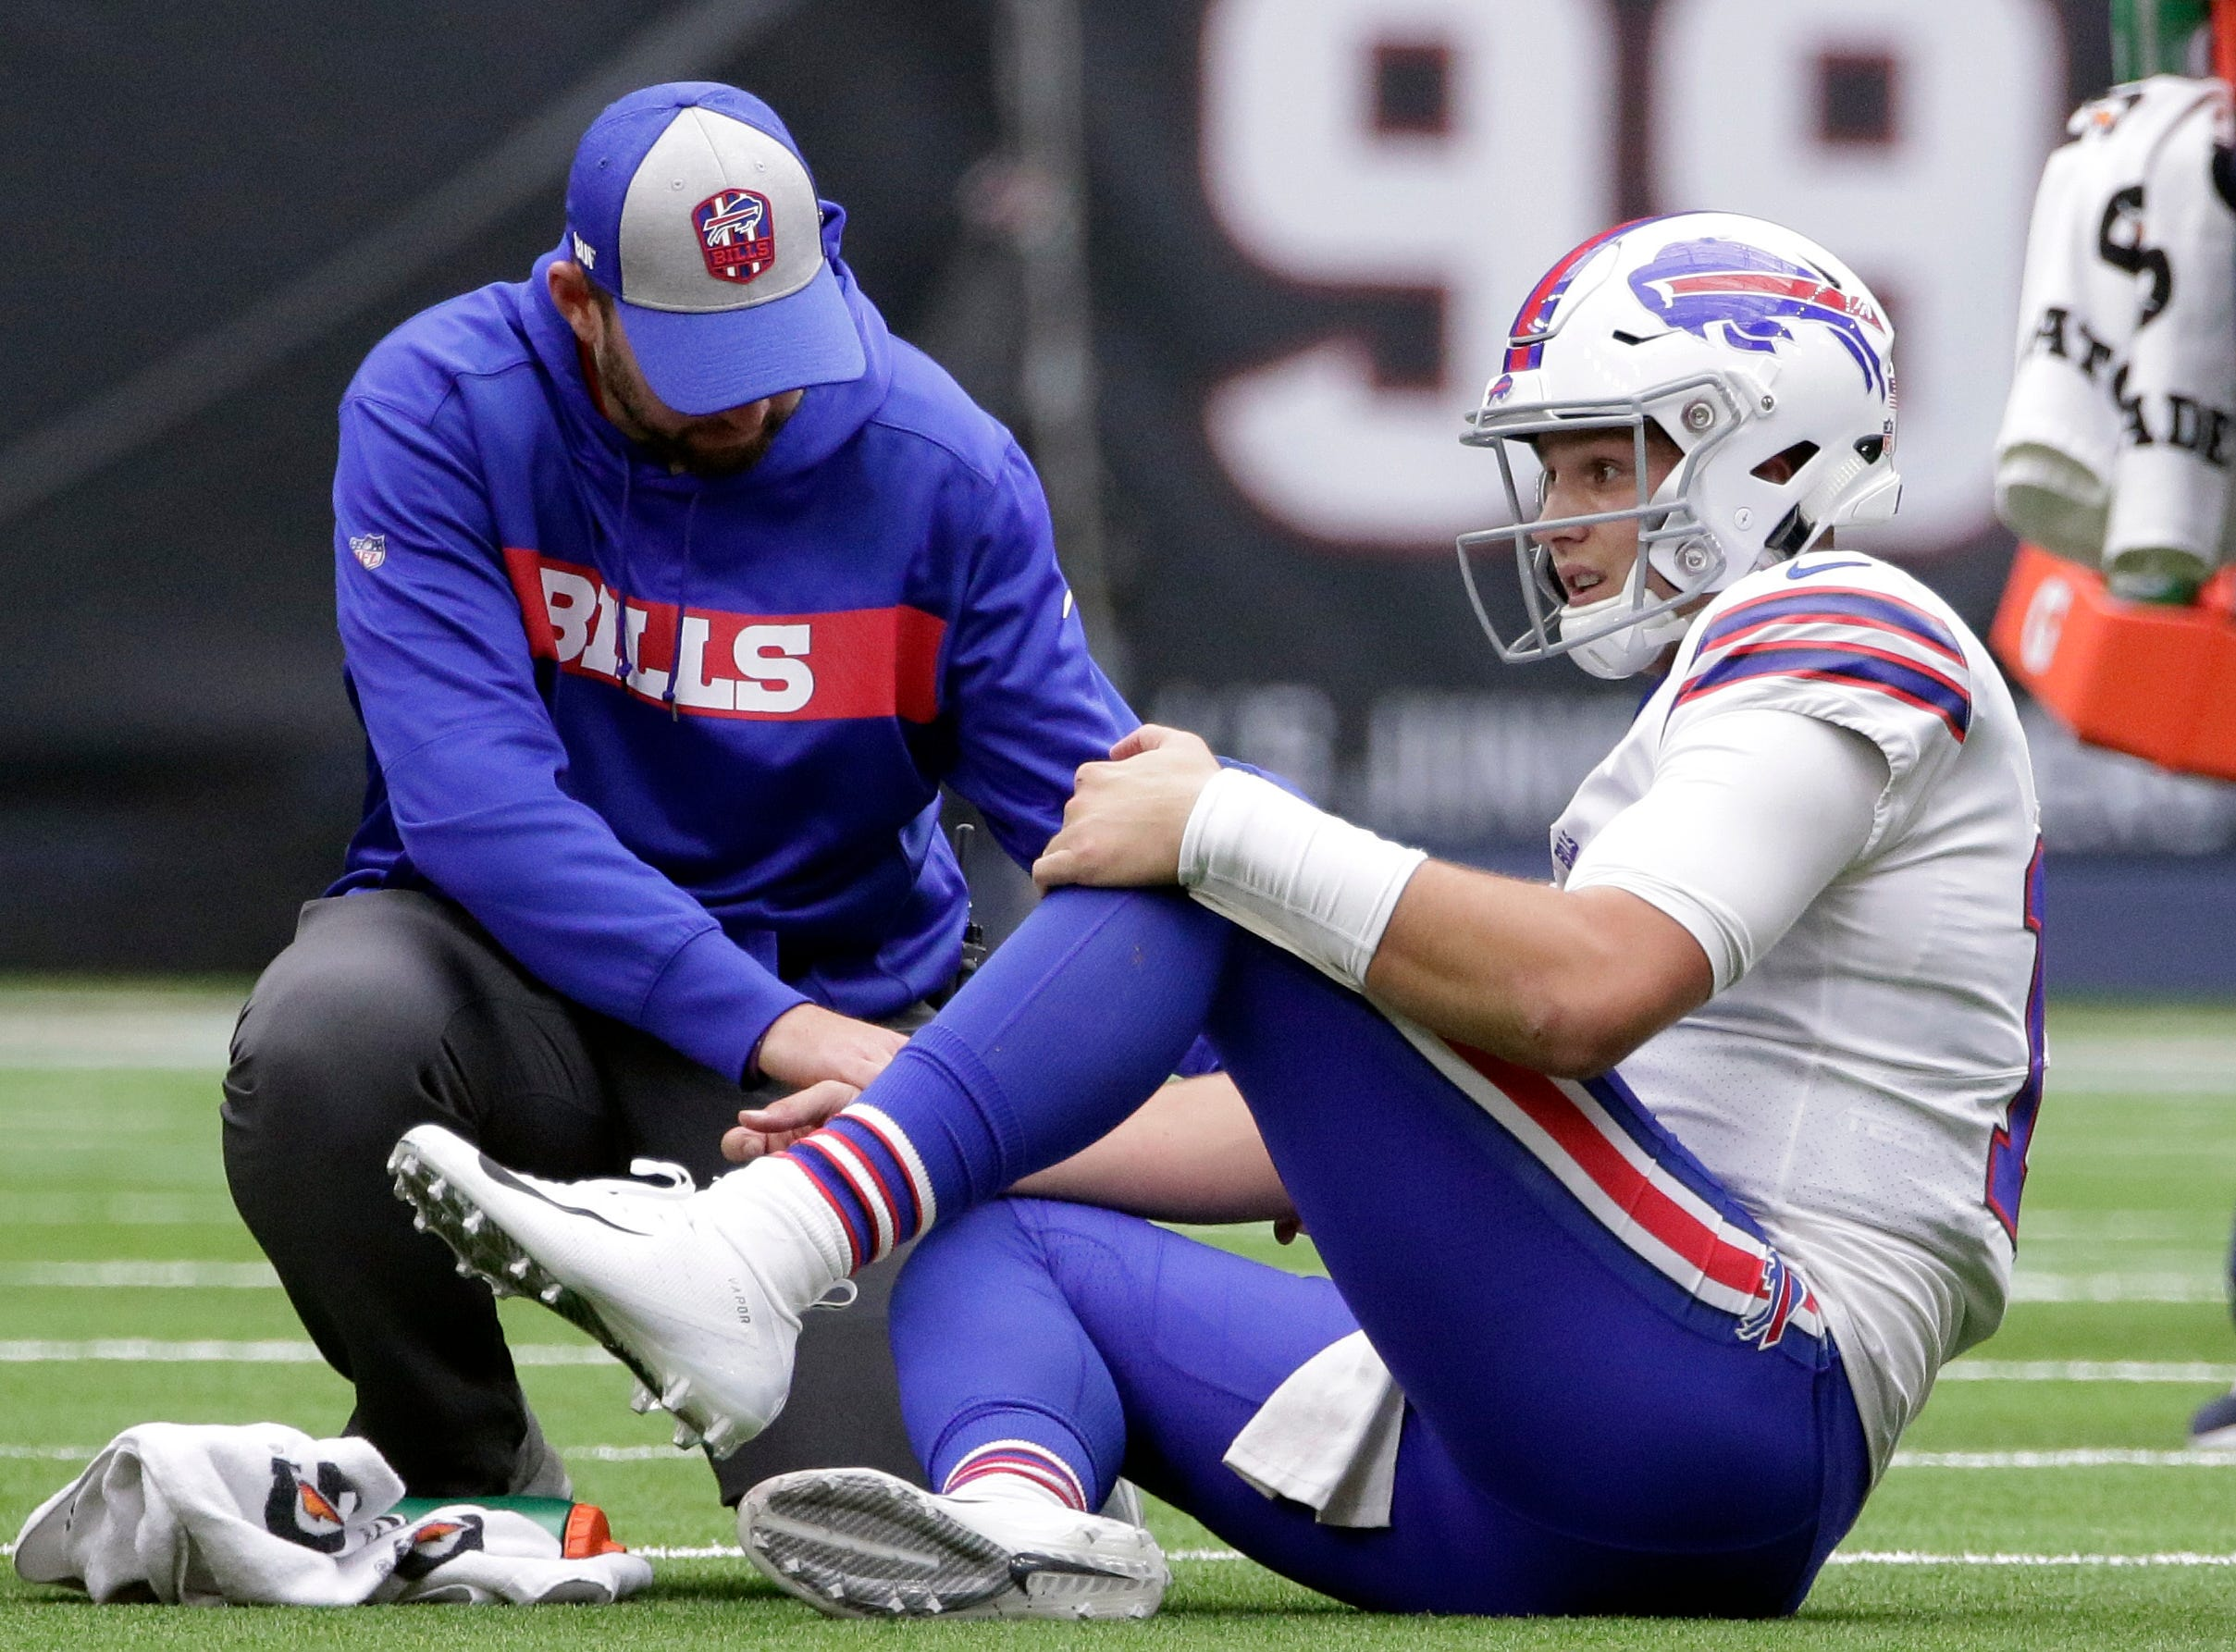 Buffalo Bills quarterback Josh Allen (17) is checked on after he was injured during the second half of an NFL football game against the Houston Texans, Sunday, Oct. 14, 2018, in Houston. (AP Photo/Michael Wyke)